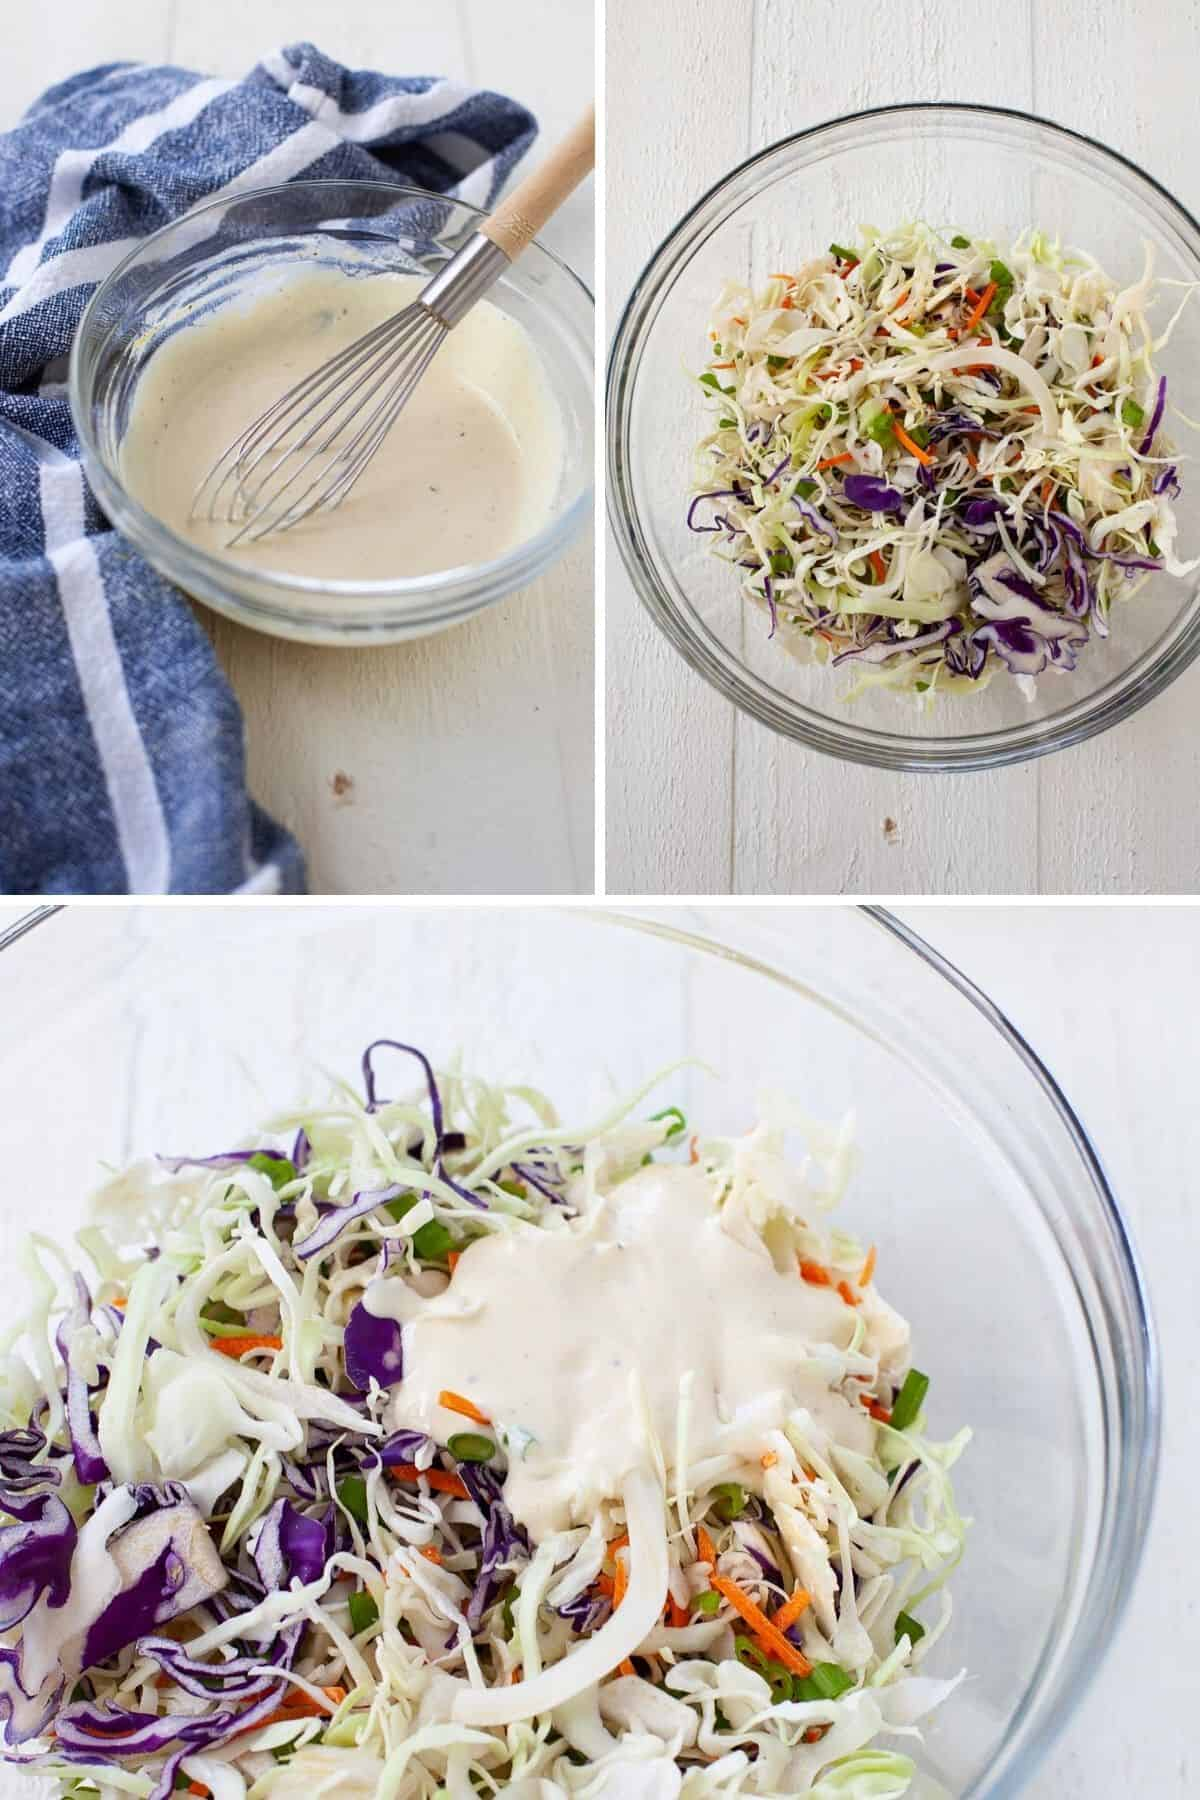 three pictures showing the Greek yogurt mix in one bowl with coleslaw mix in another bowl